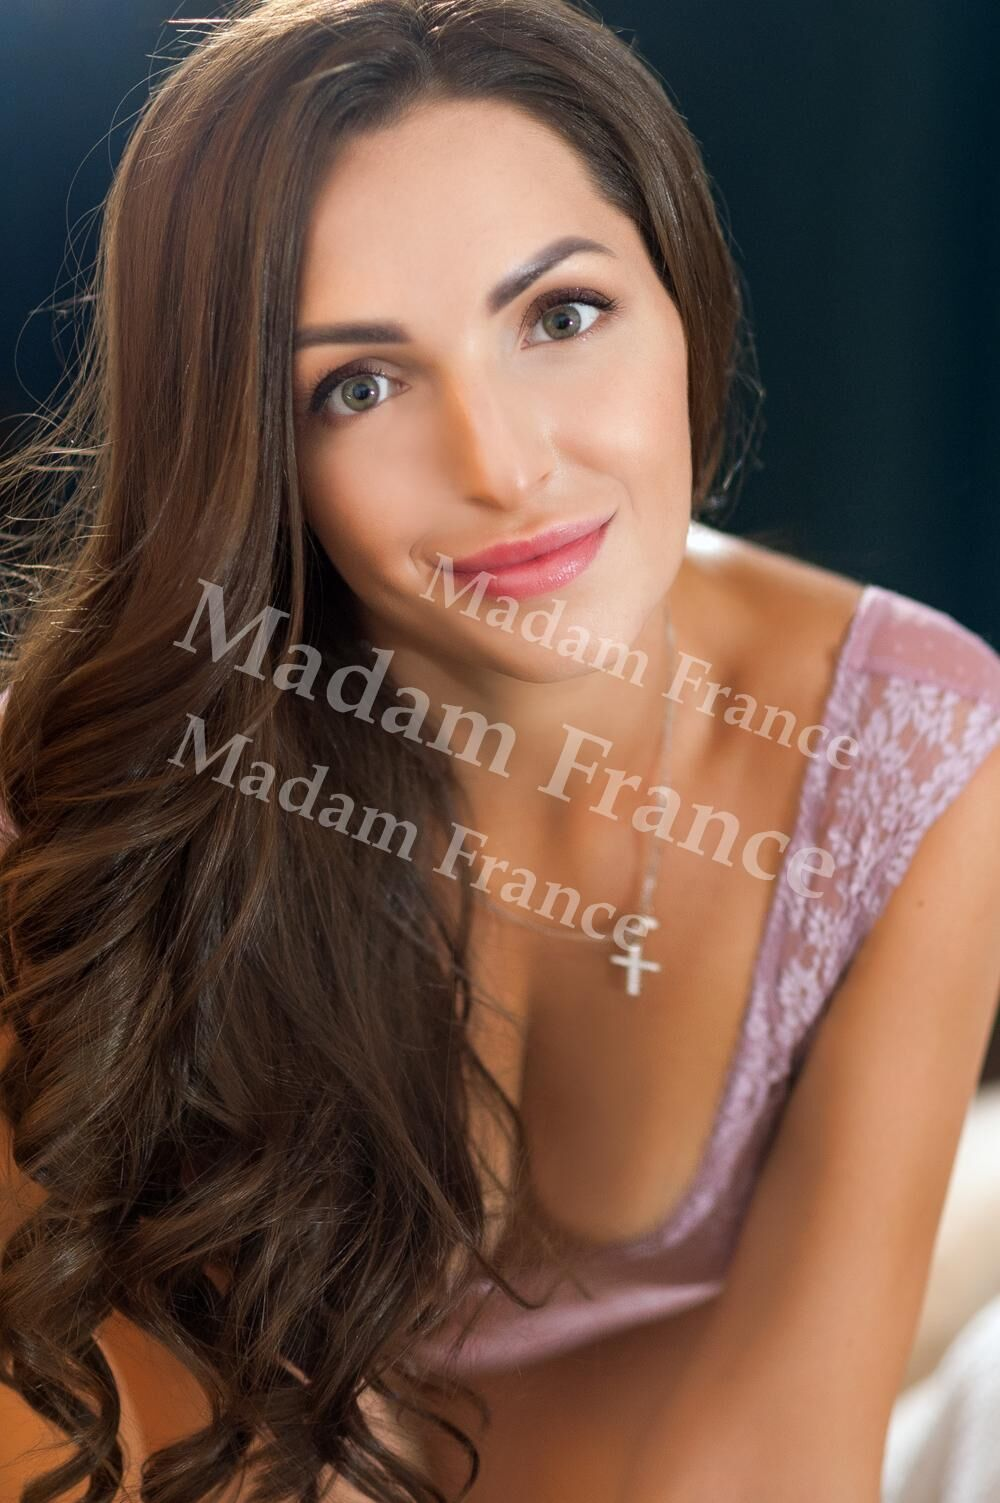 Elina model on Madam France escort service